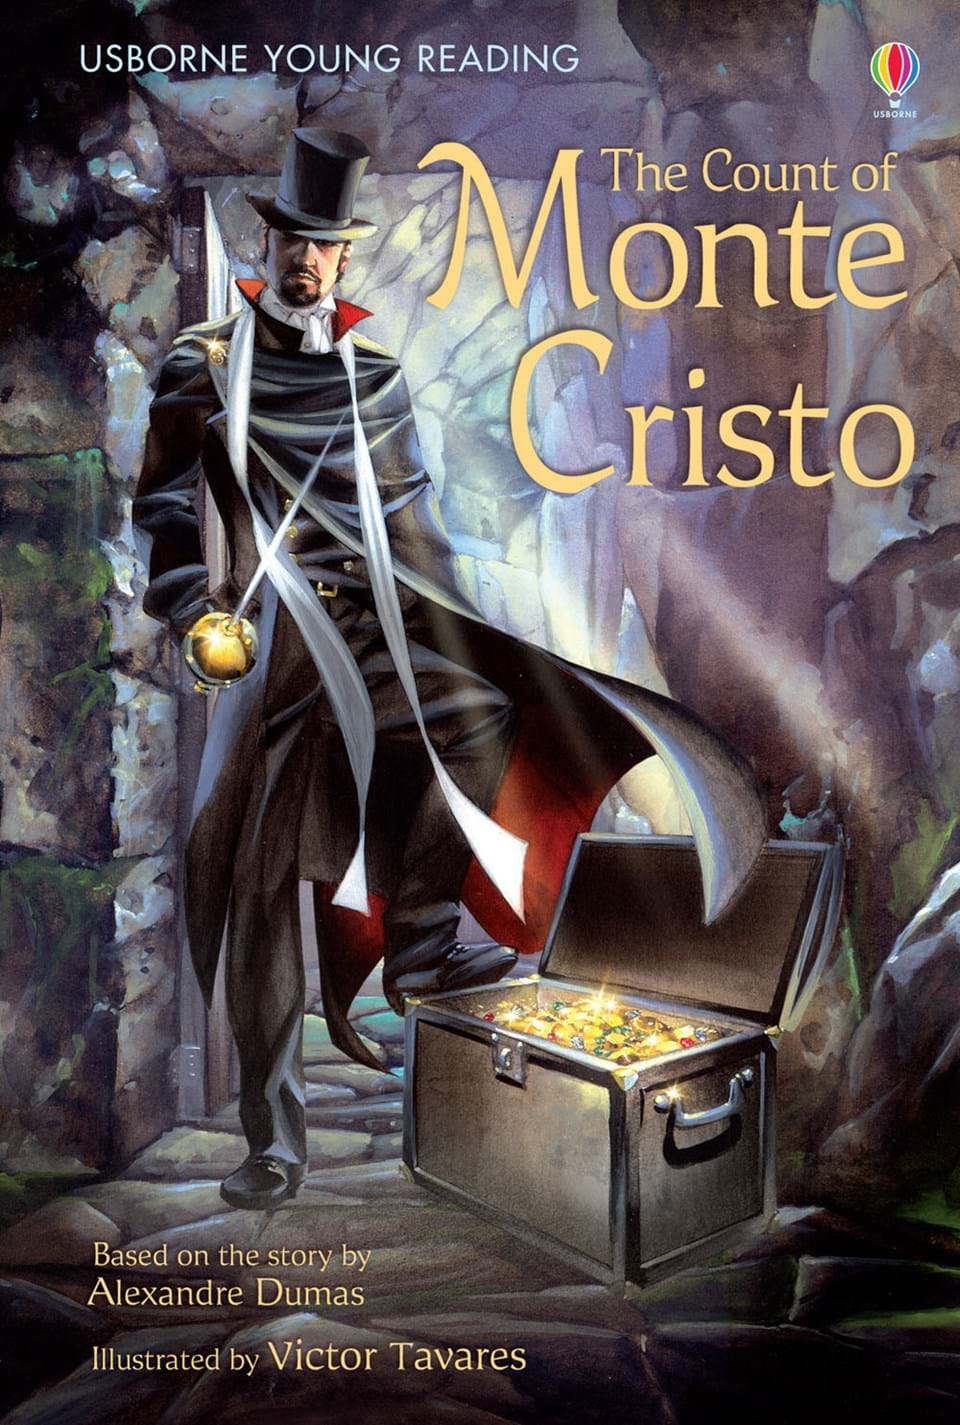 a critique about revenge in the story of the count of monte cristo I am so excited to read the short story the count of monte cristo with everybodyit is a story that takes place during the french revolution it has buried treasure, love, revenge, daring prison escapes, politics, public scorn.